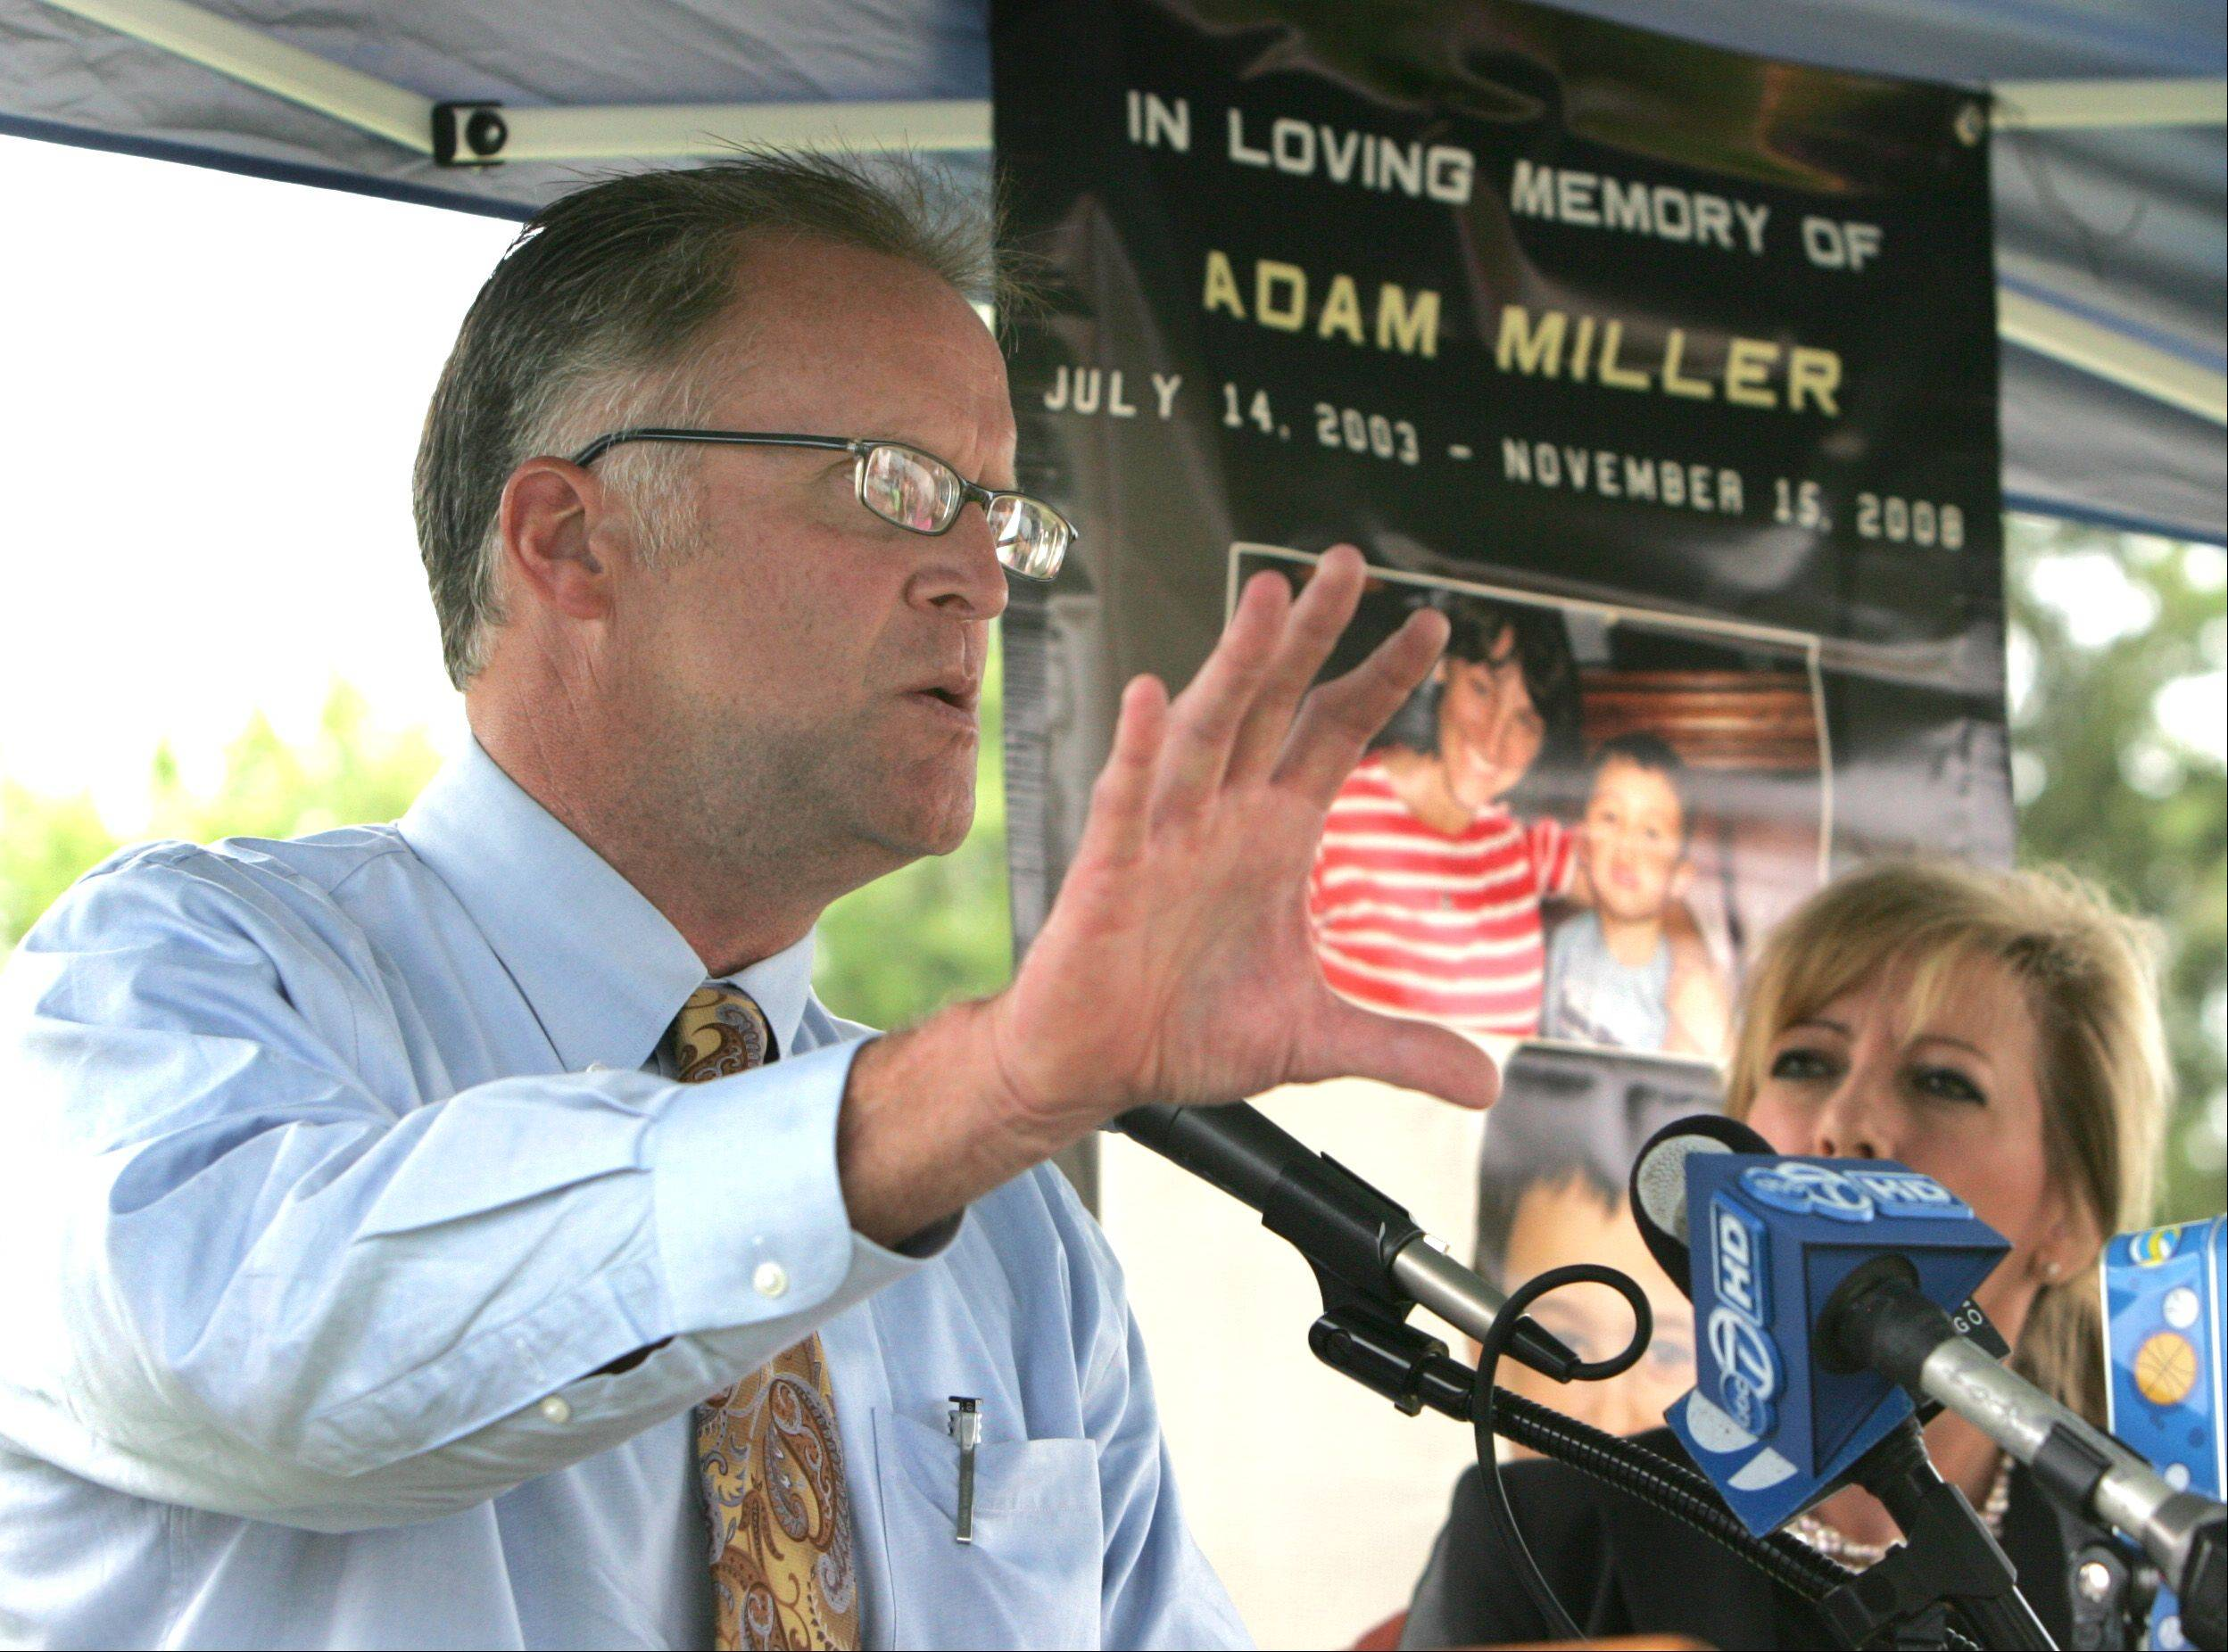 DuPage County Board Chairman Dan Cronin talks Friday about legislation stemming from the 2008 death of John and Cheryl Miller's son Adam, who was killed by a distracted driver.